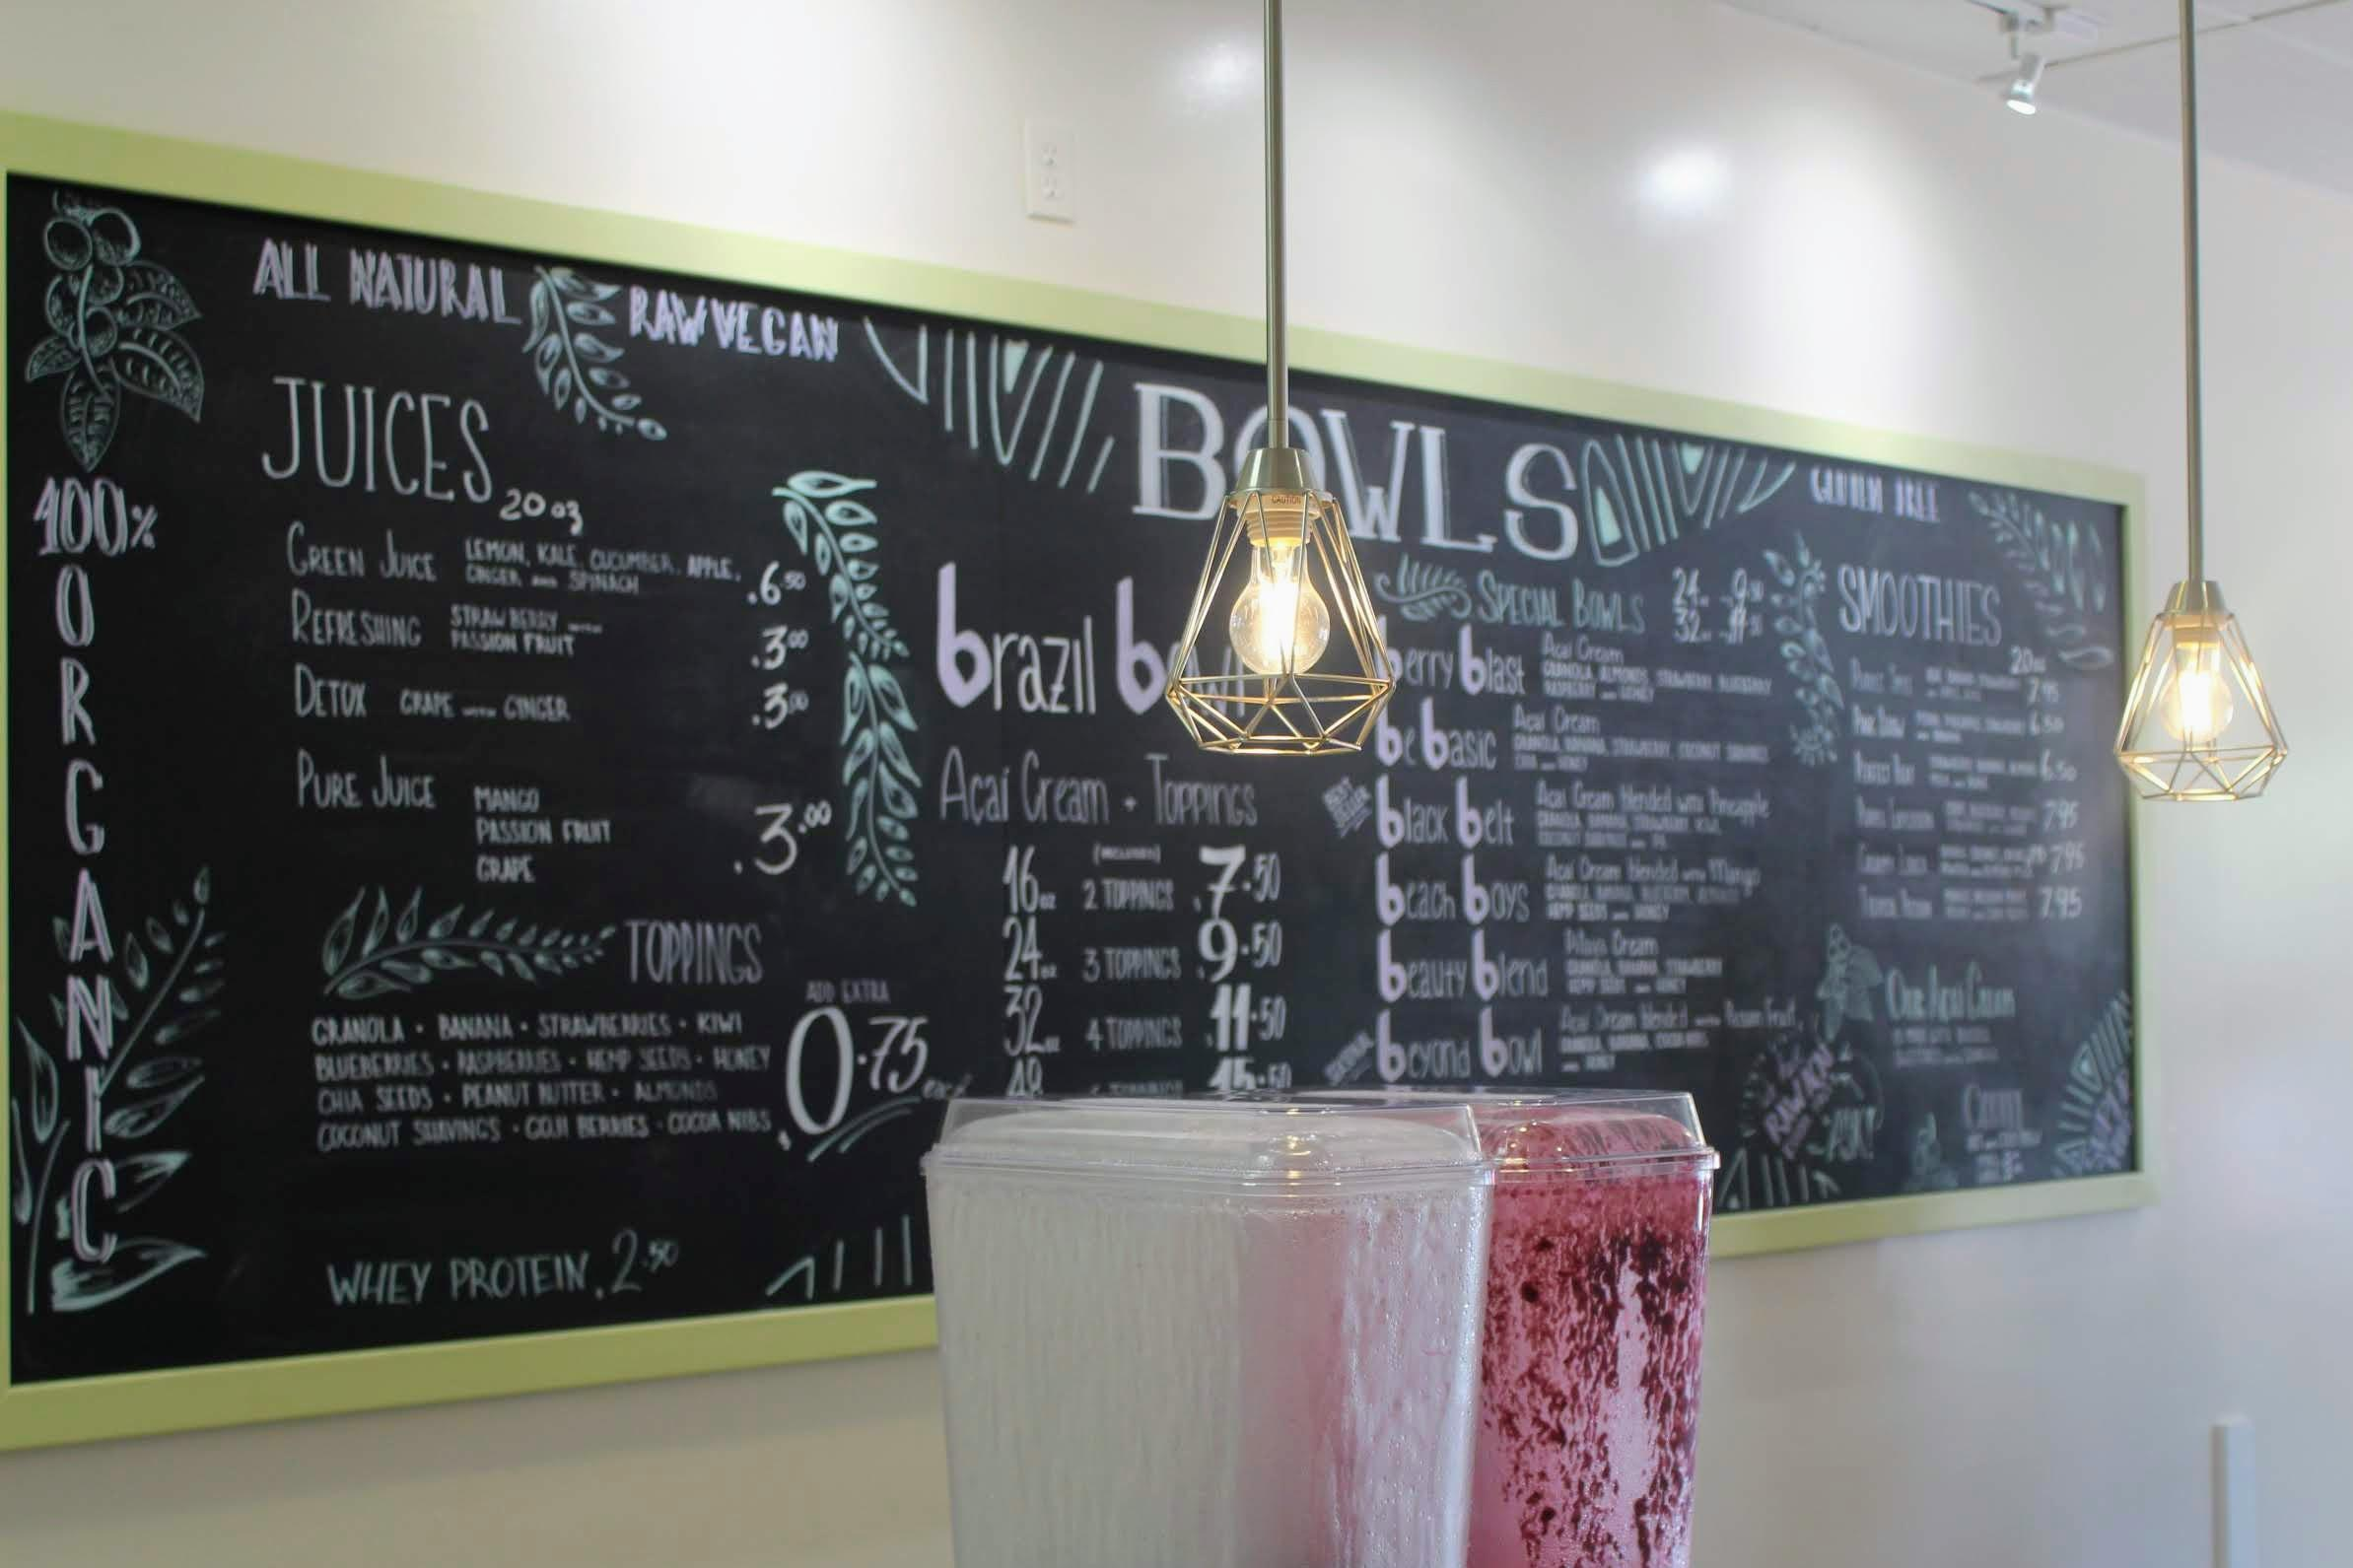 The chalkboard menu was designed by an artist from San Diego and boasts options beyond just açaí bowls, like smoothies and juices. Credit: Abby Sourwine / The Foothill Dragon Press